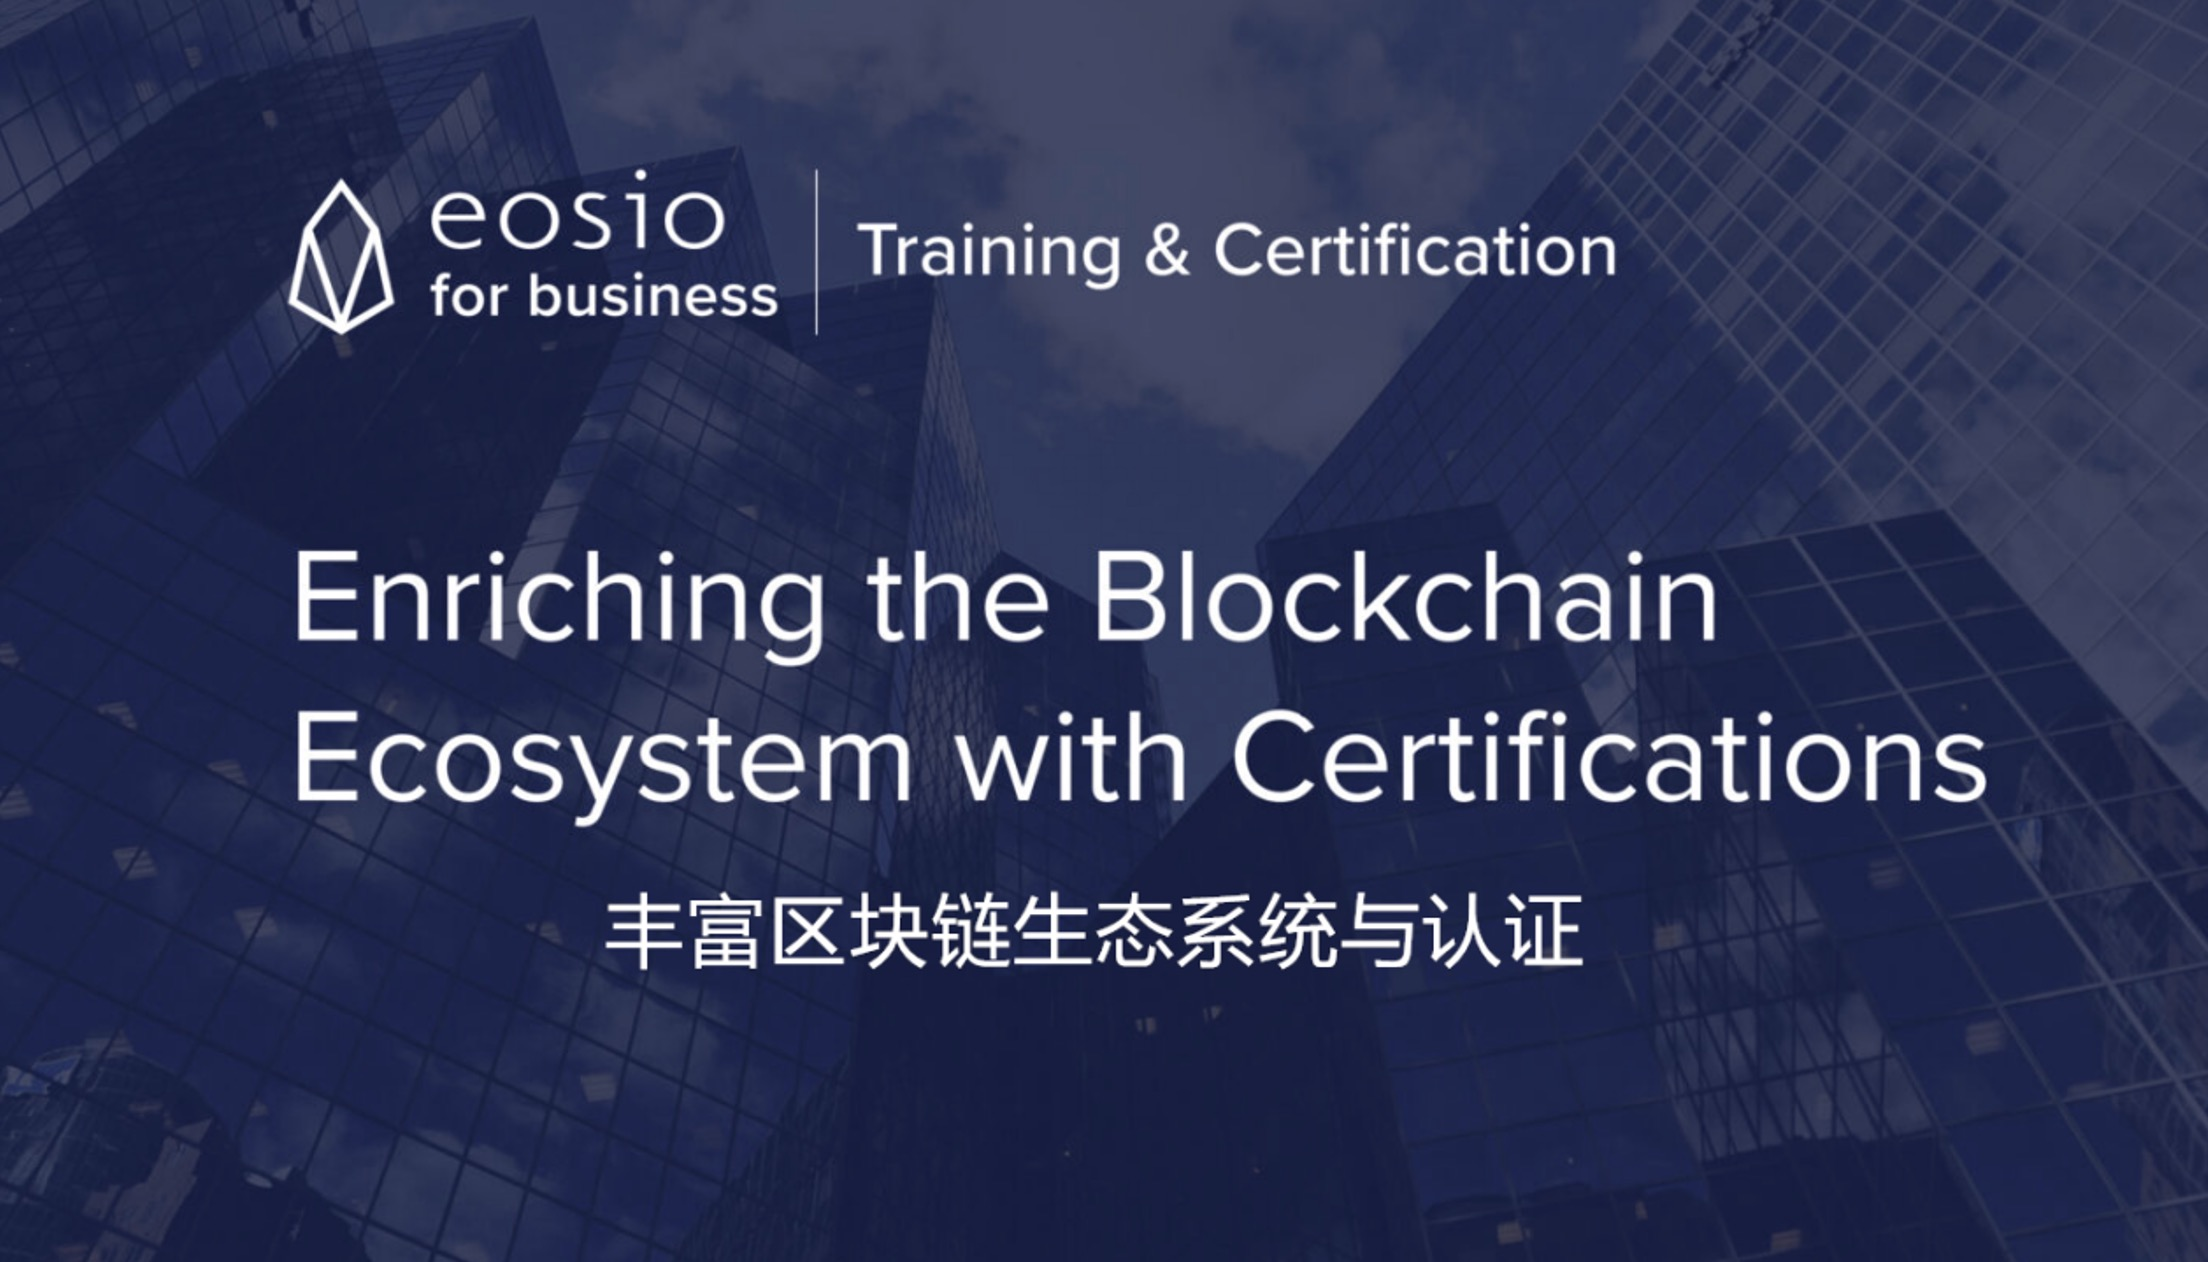 eosio-training